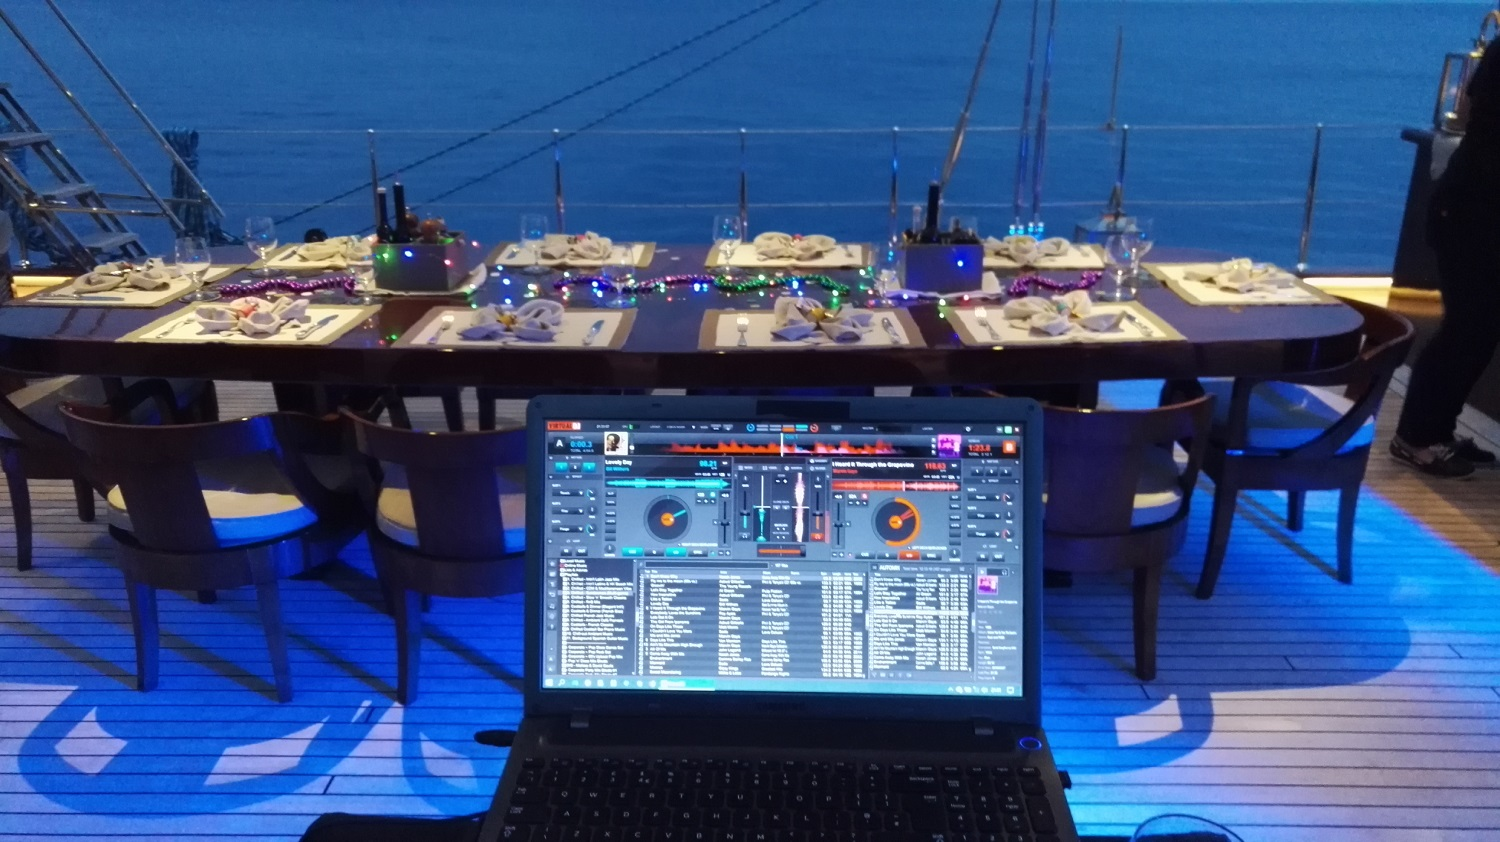 Mood Lighting for private events on Sailing Boats & Yachts etc - St Tropez, Cannes, Monaco, Cote d'Azur